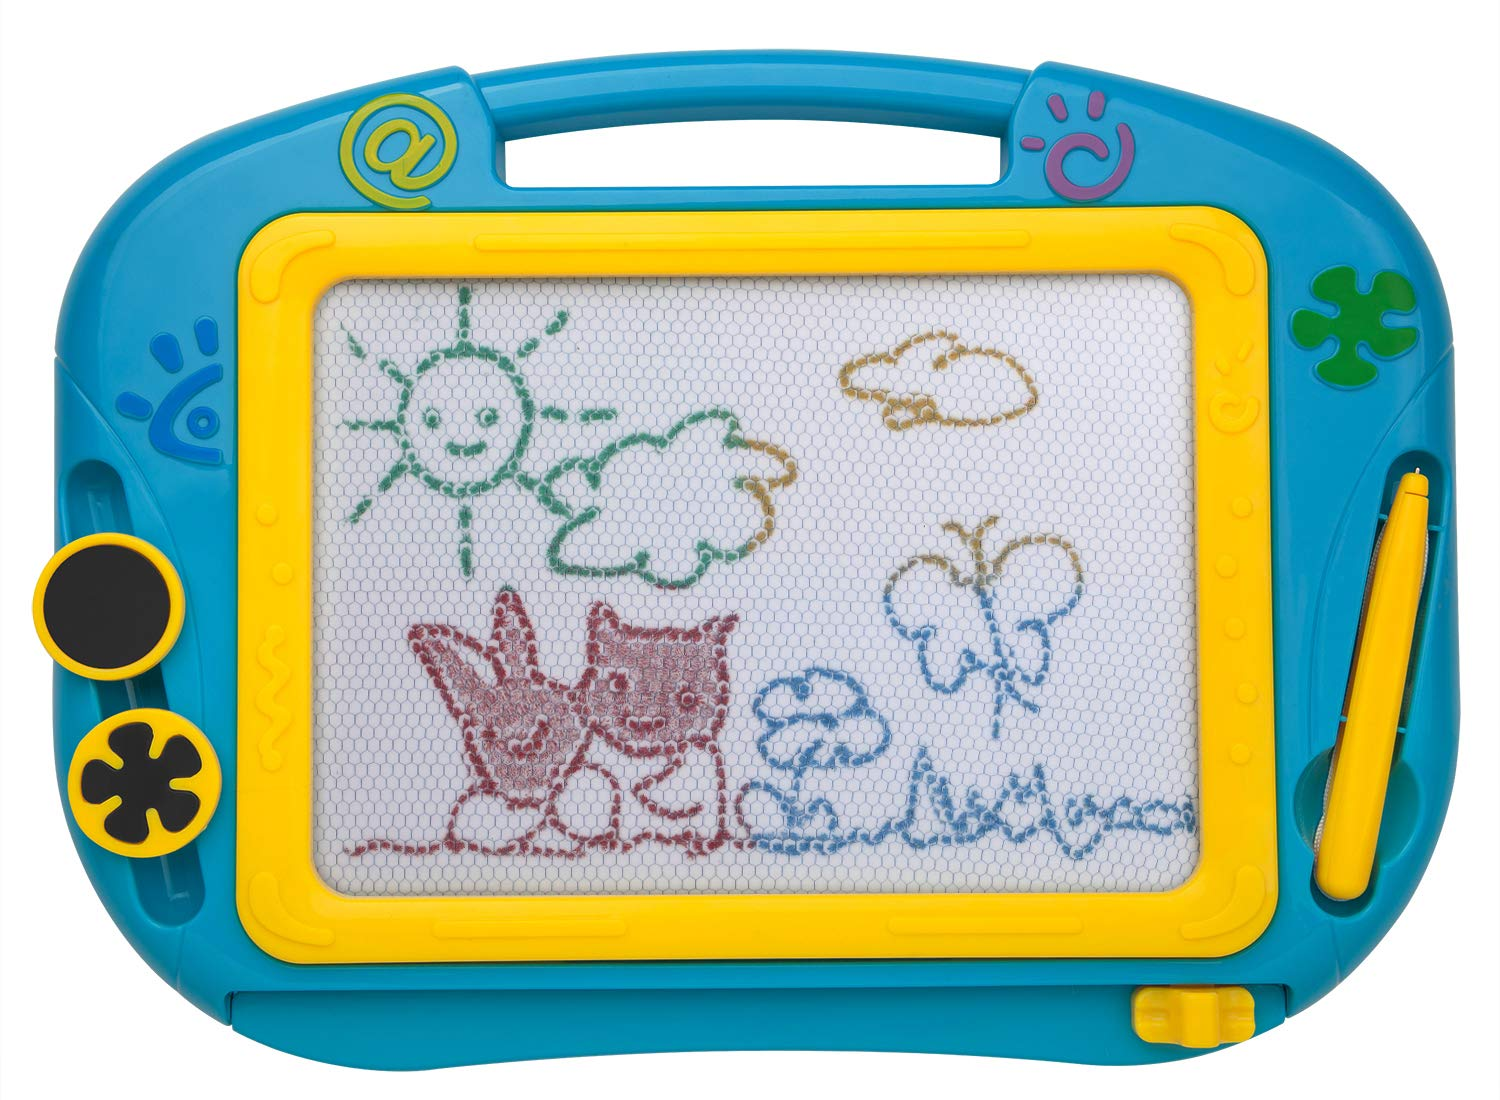 ikidsislands IKS88B [Travel Size] Color Magnetic Drawing Board for Kids, Doodle Board for Toddlers, Sketch Pad Toy for Little Boys (Blue)